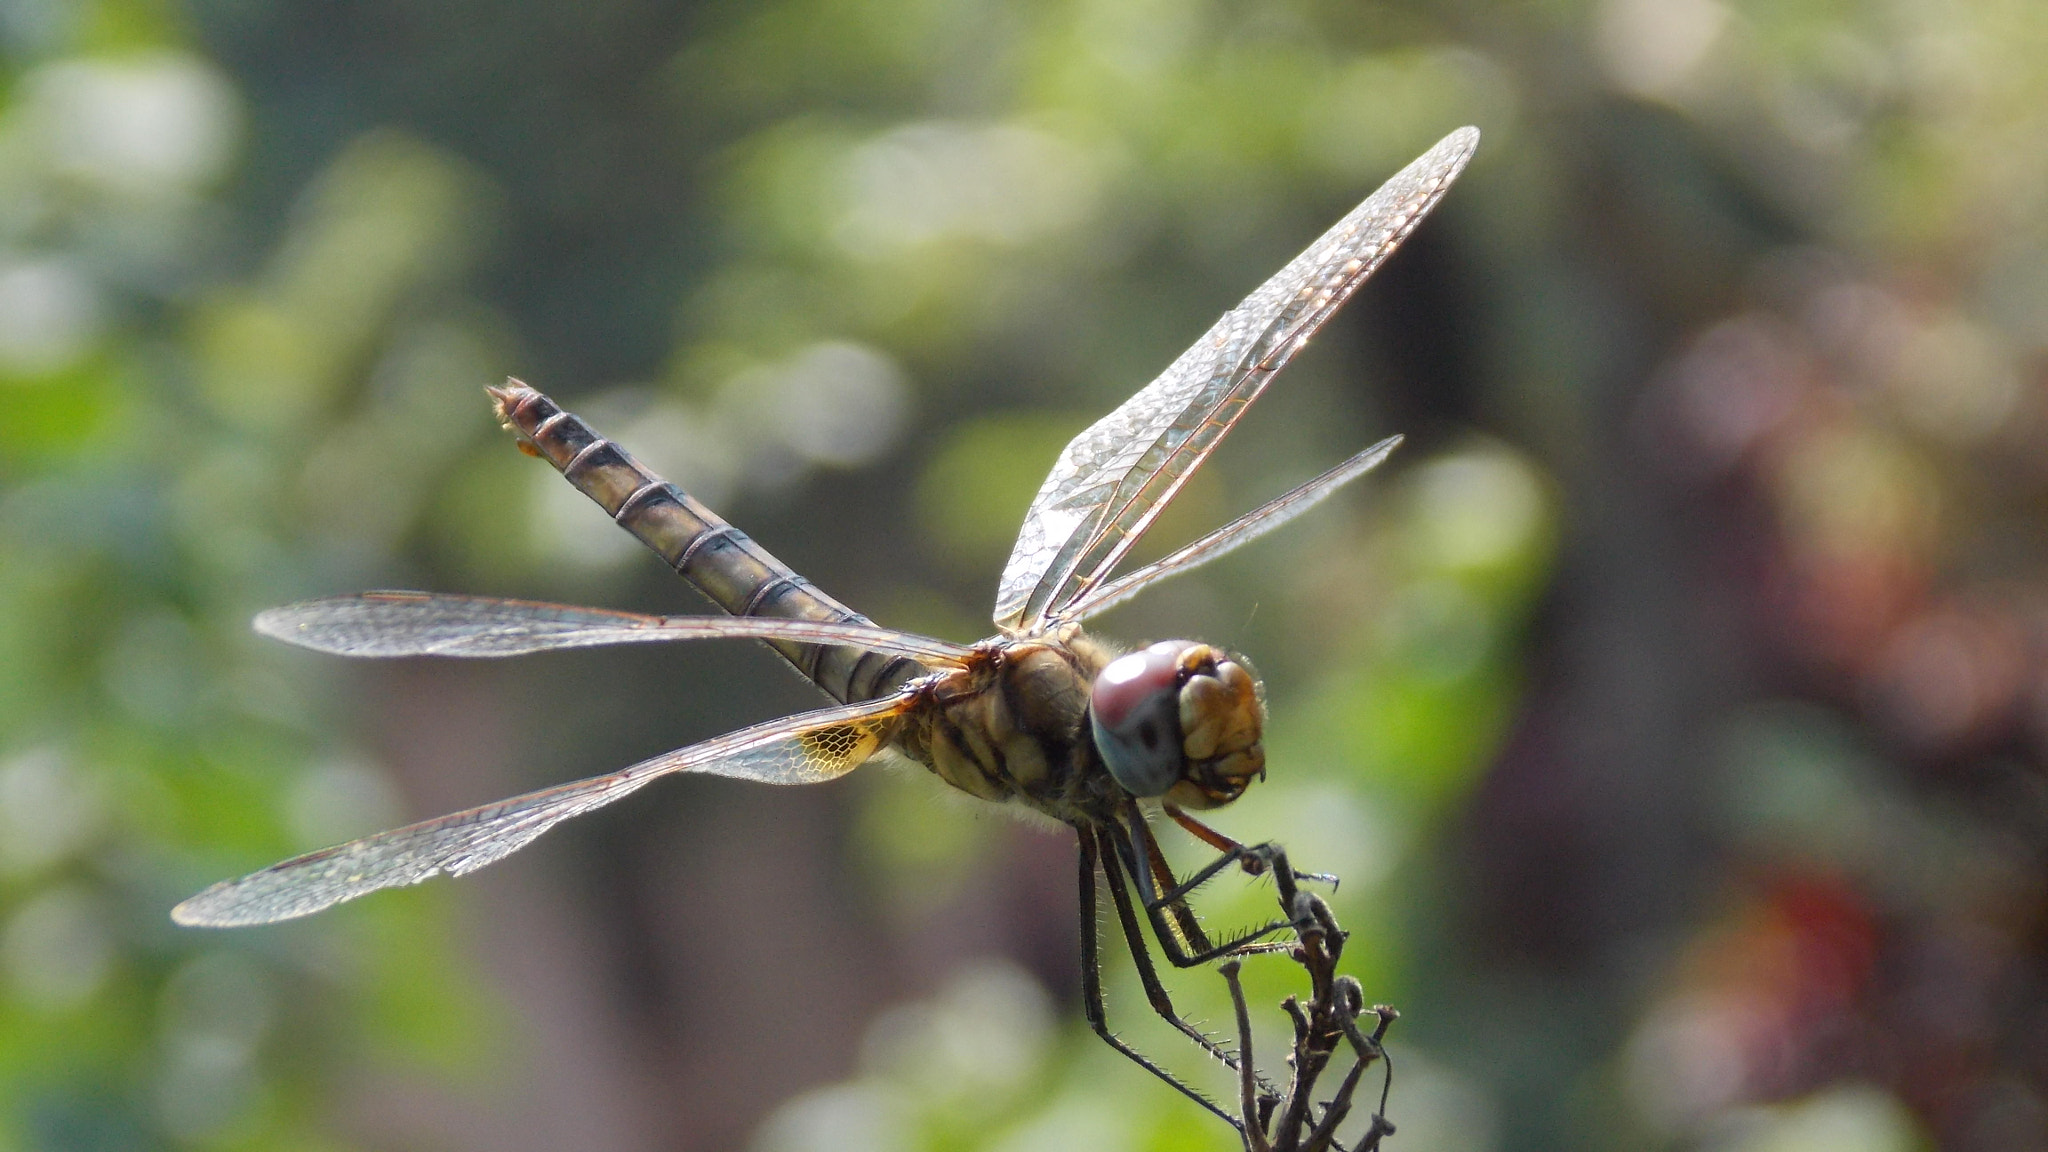 Photograph Dragonfly by Ajaz Hameed on 500px